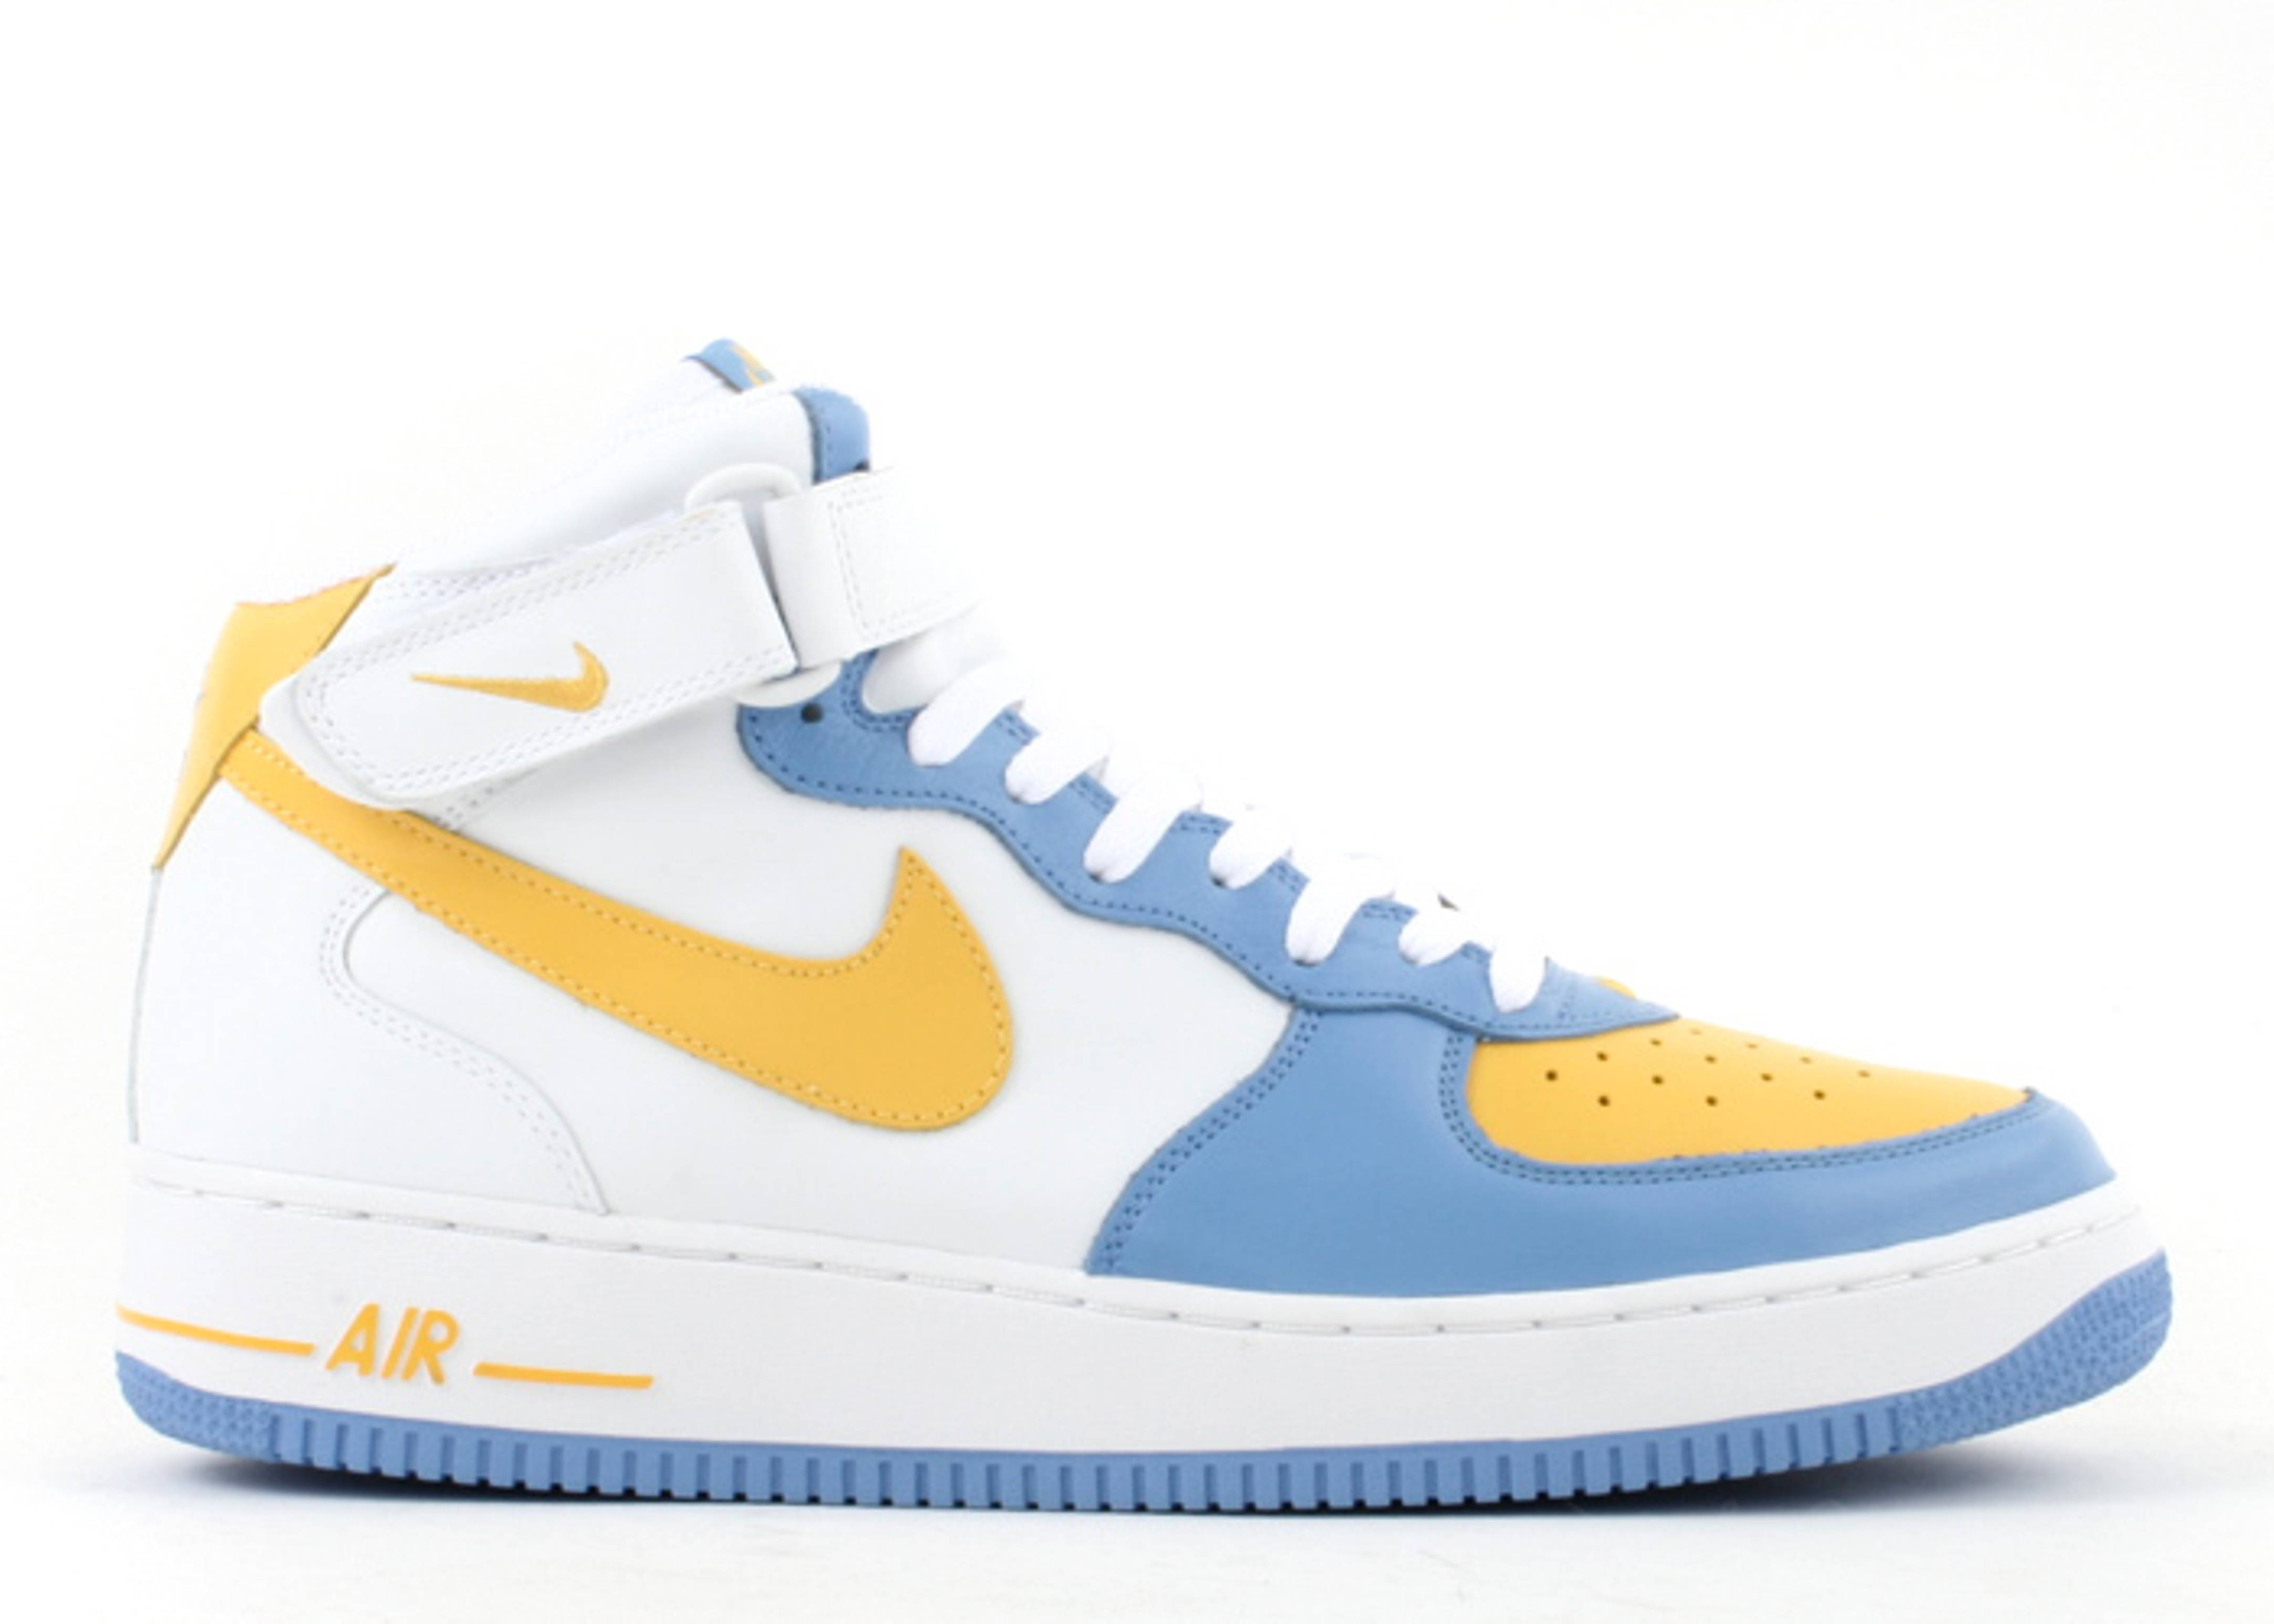 promo code 8185b beef7 Air Force 1 Mid - Nike - 306352 172 - white baby blue yellow   Flight Club